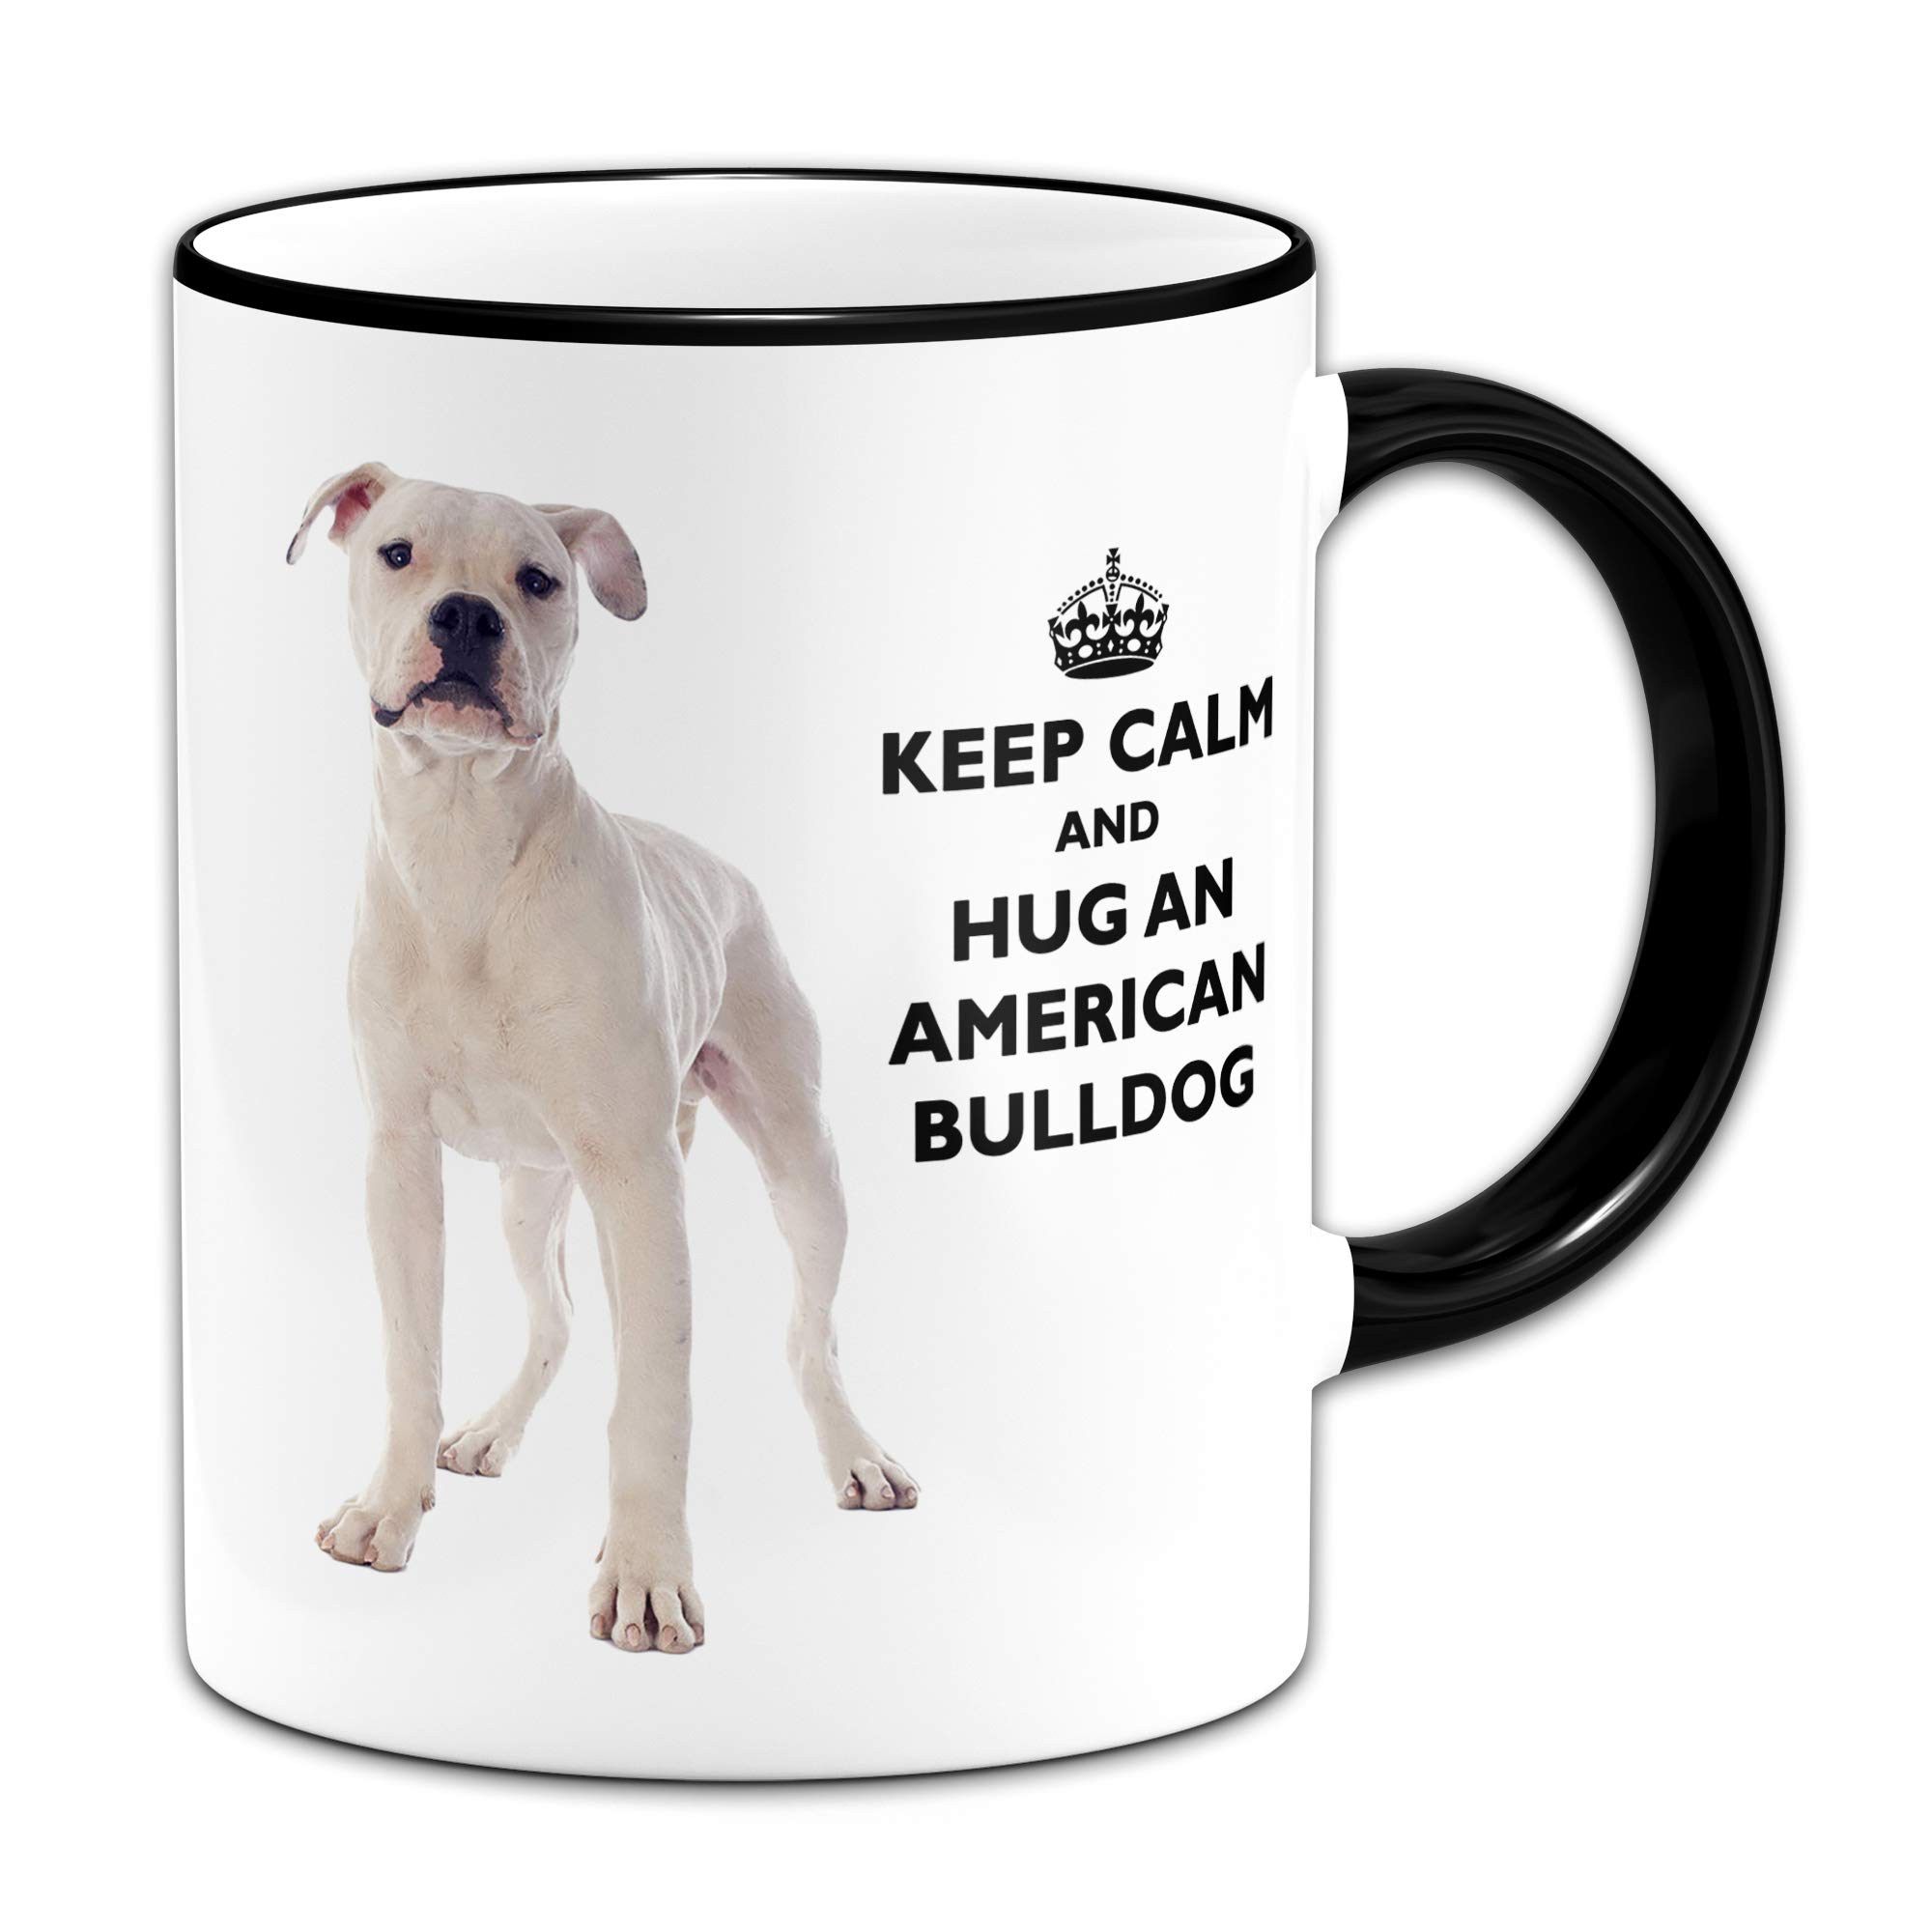 Keep Calm and Hug an American Bulldog – Gift Mug + Black Handle/Rim